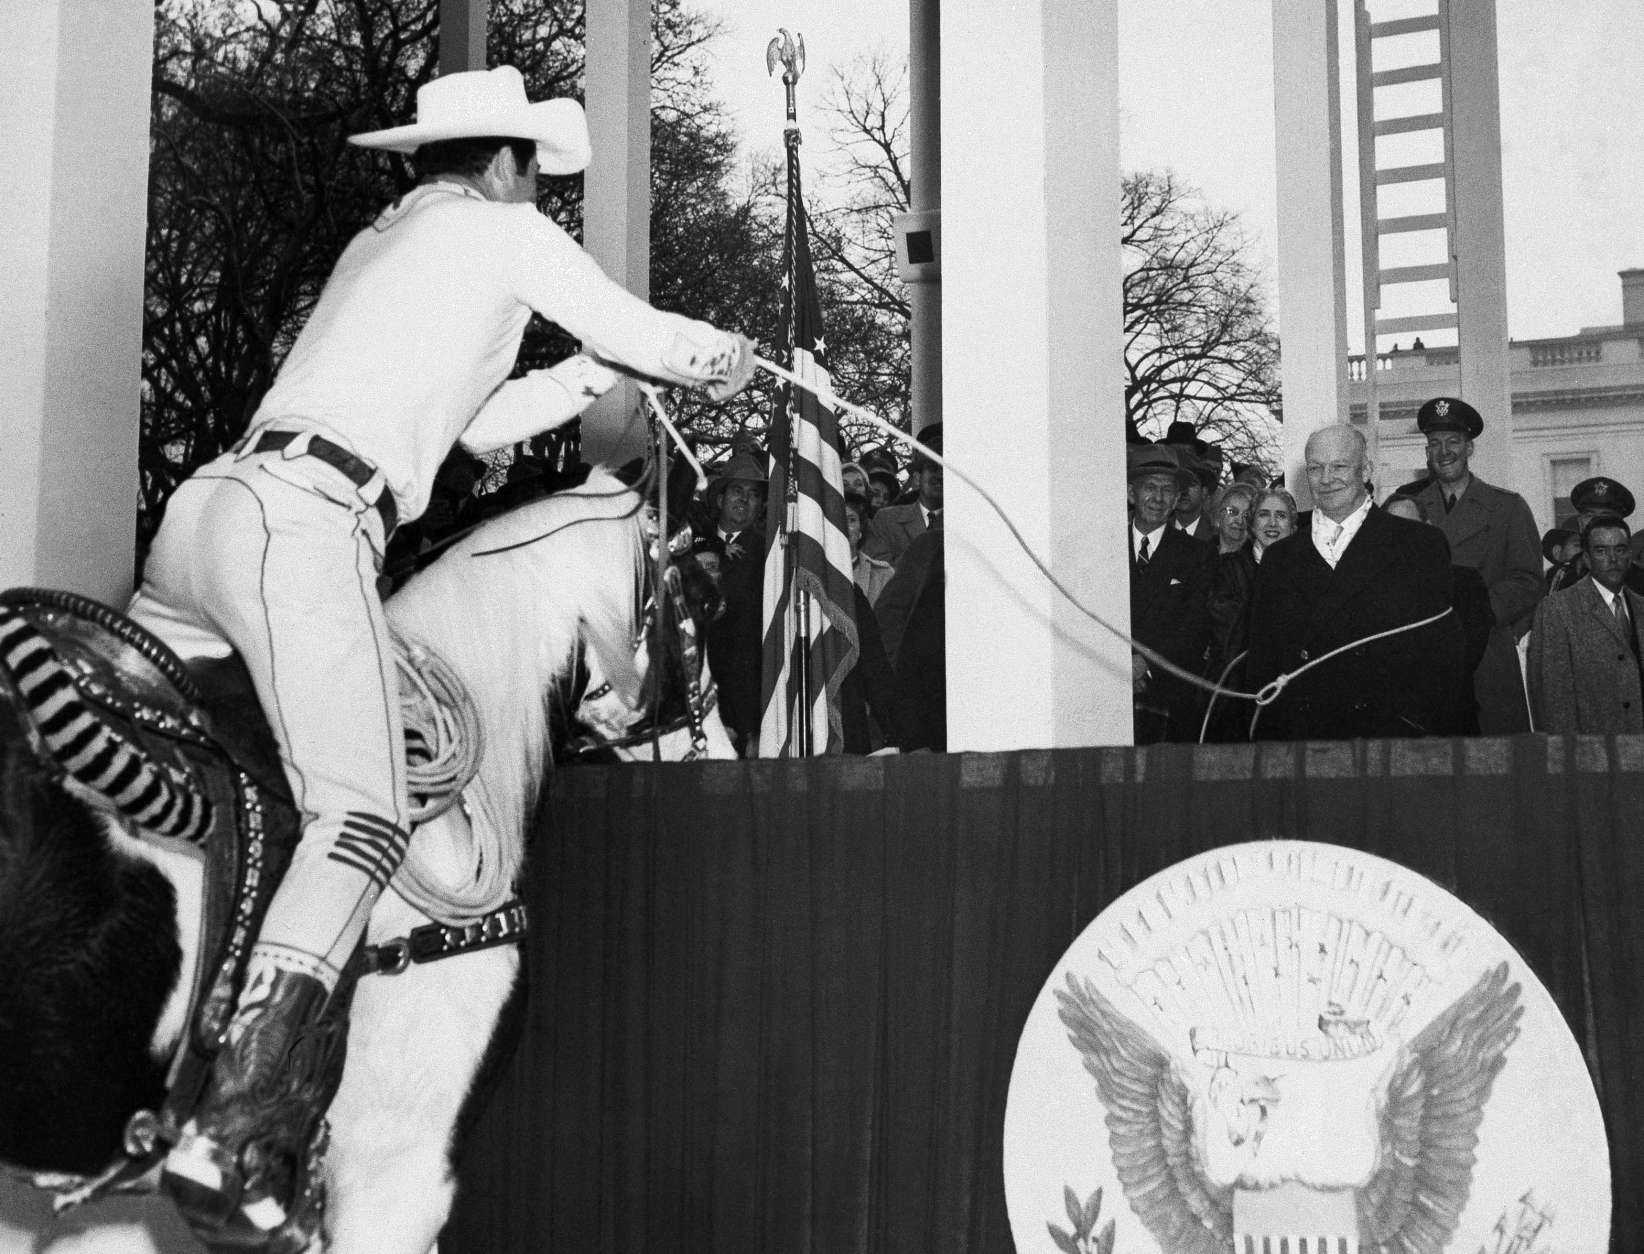 Dwight D. Eisenhower, center, seems to be getting a big kick out of being lassoed by Monte Montana, dressed in cowboy style, as he reviewed the inaugural parade from presidential stand in front of the White House, Jan. 20, 1953, Washington, D.C. (AP Photo)